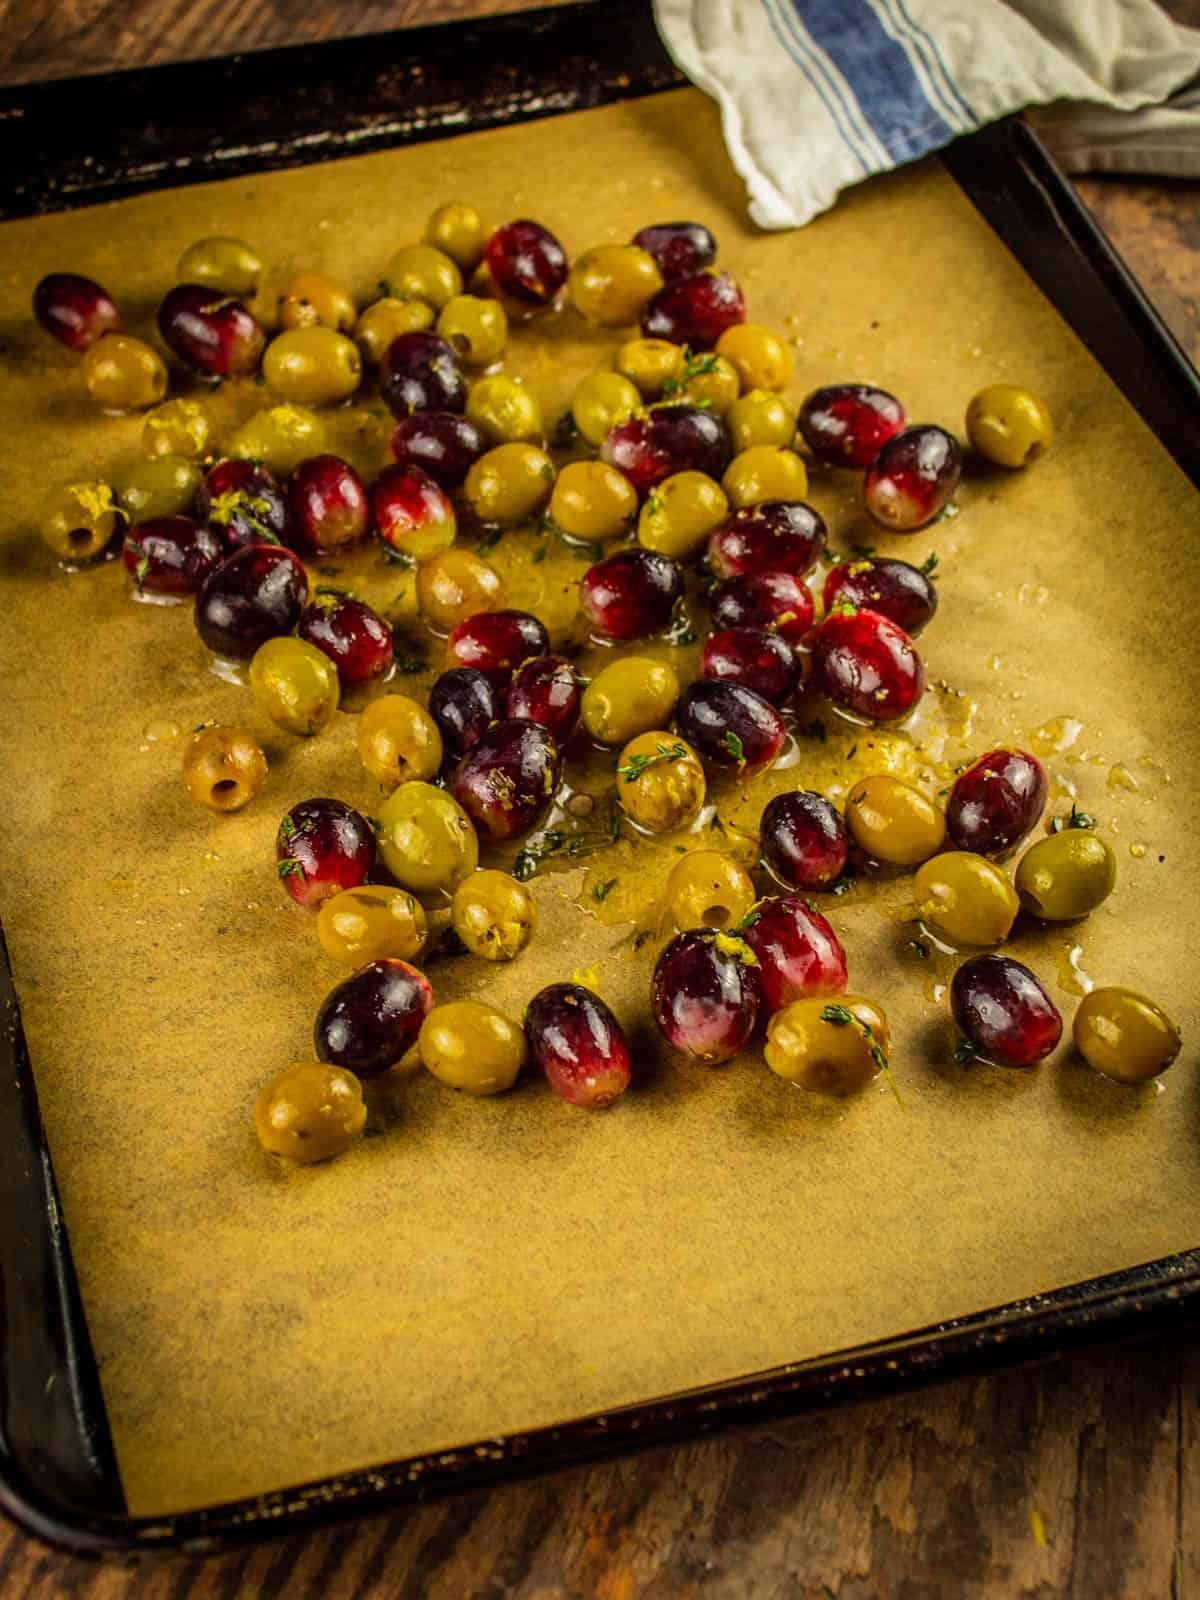 seasoned red grapes and green olives on a sheet pan